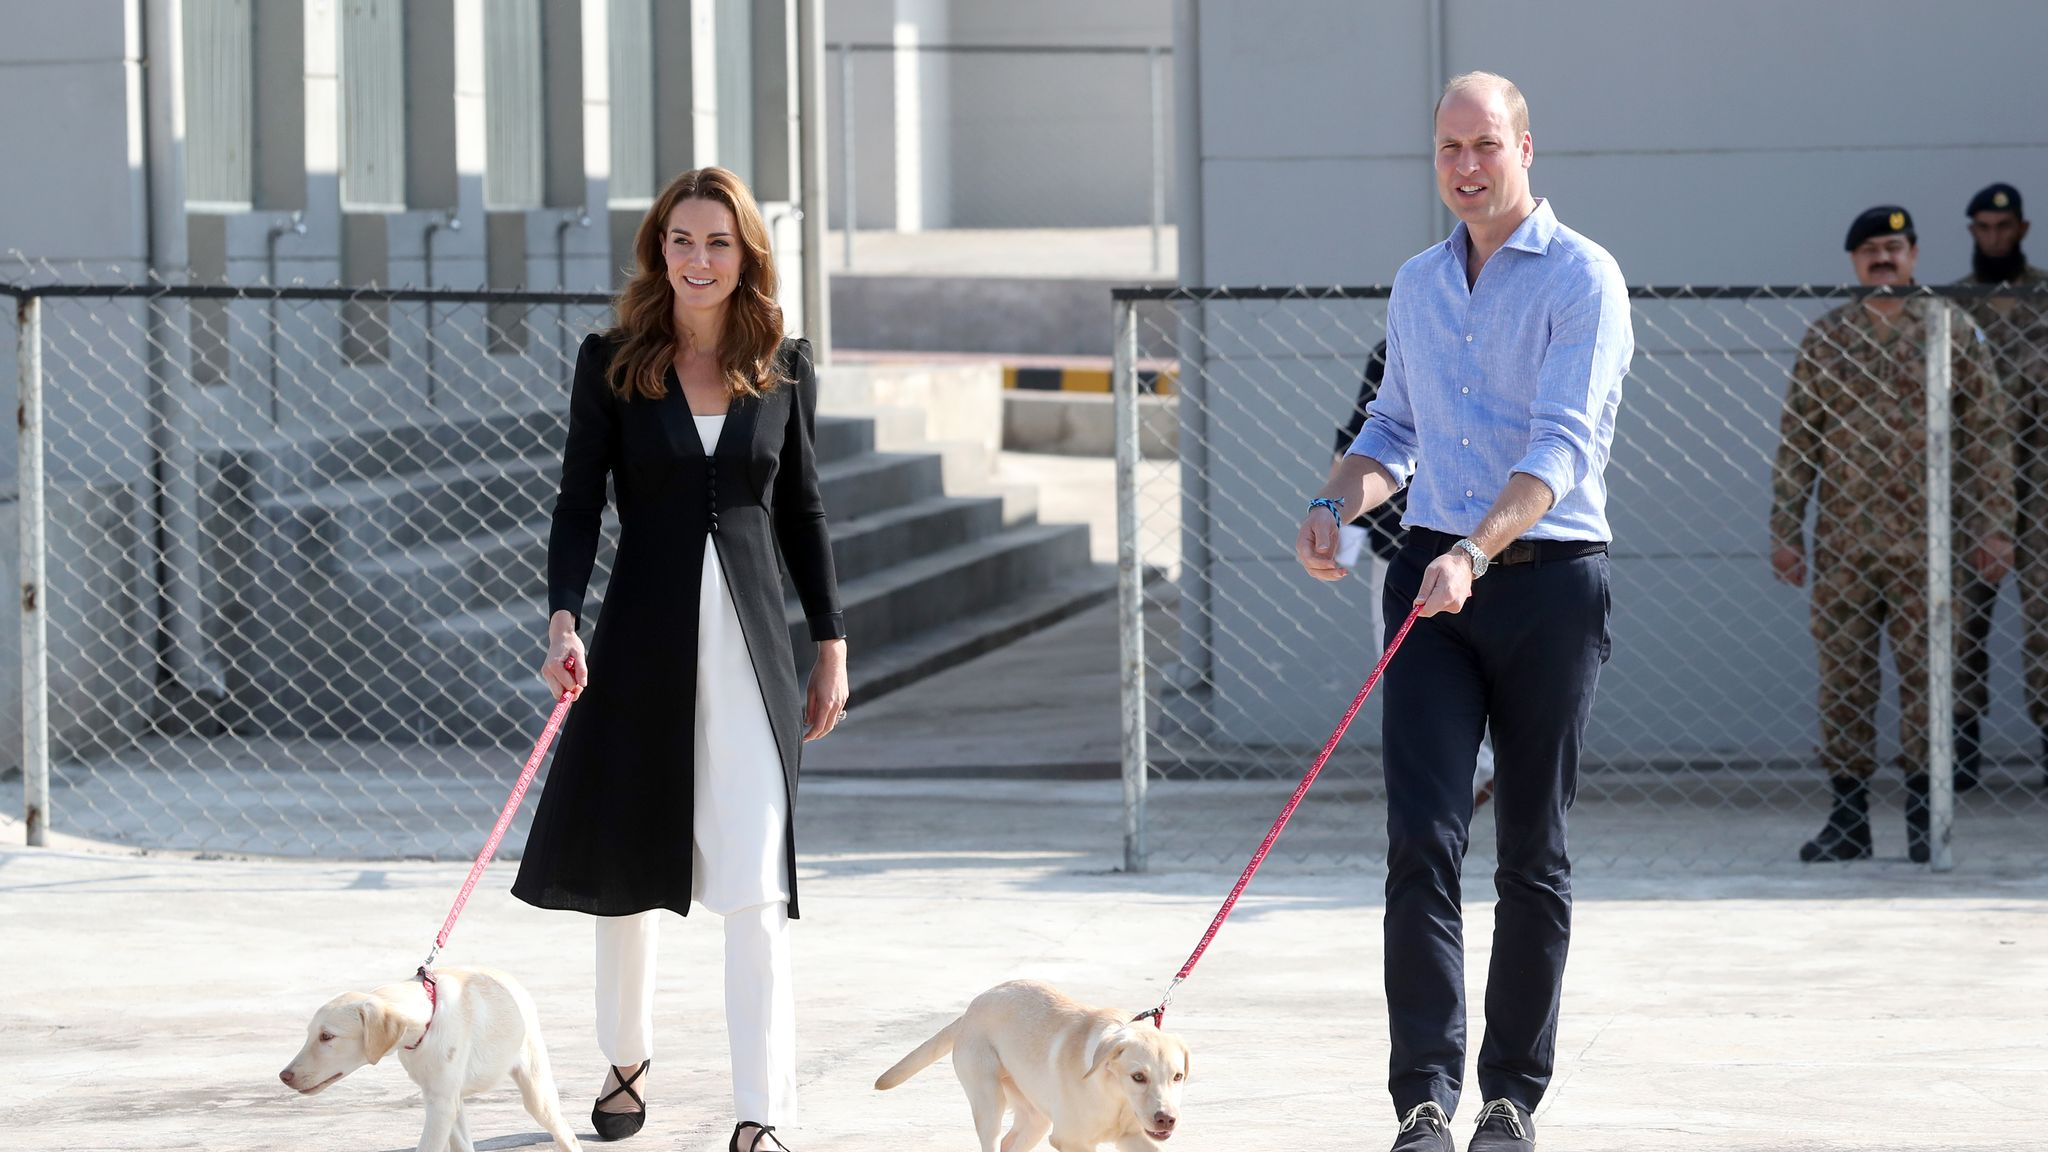 William and Kate end royal tour of Pakistan with sniffer dogs